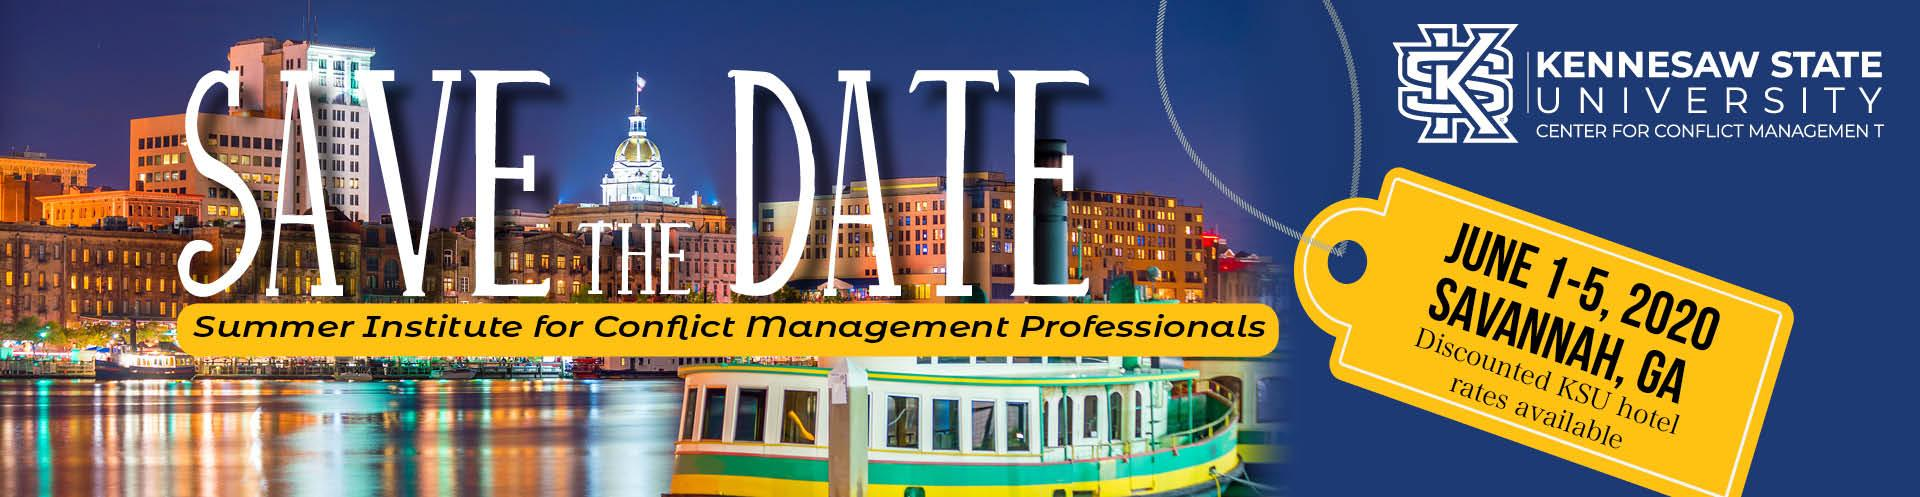 Save the Date: June 1-5 Summer Institute